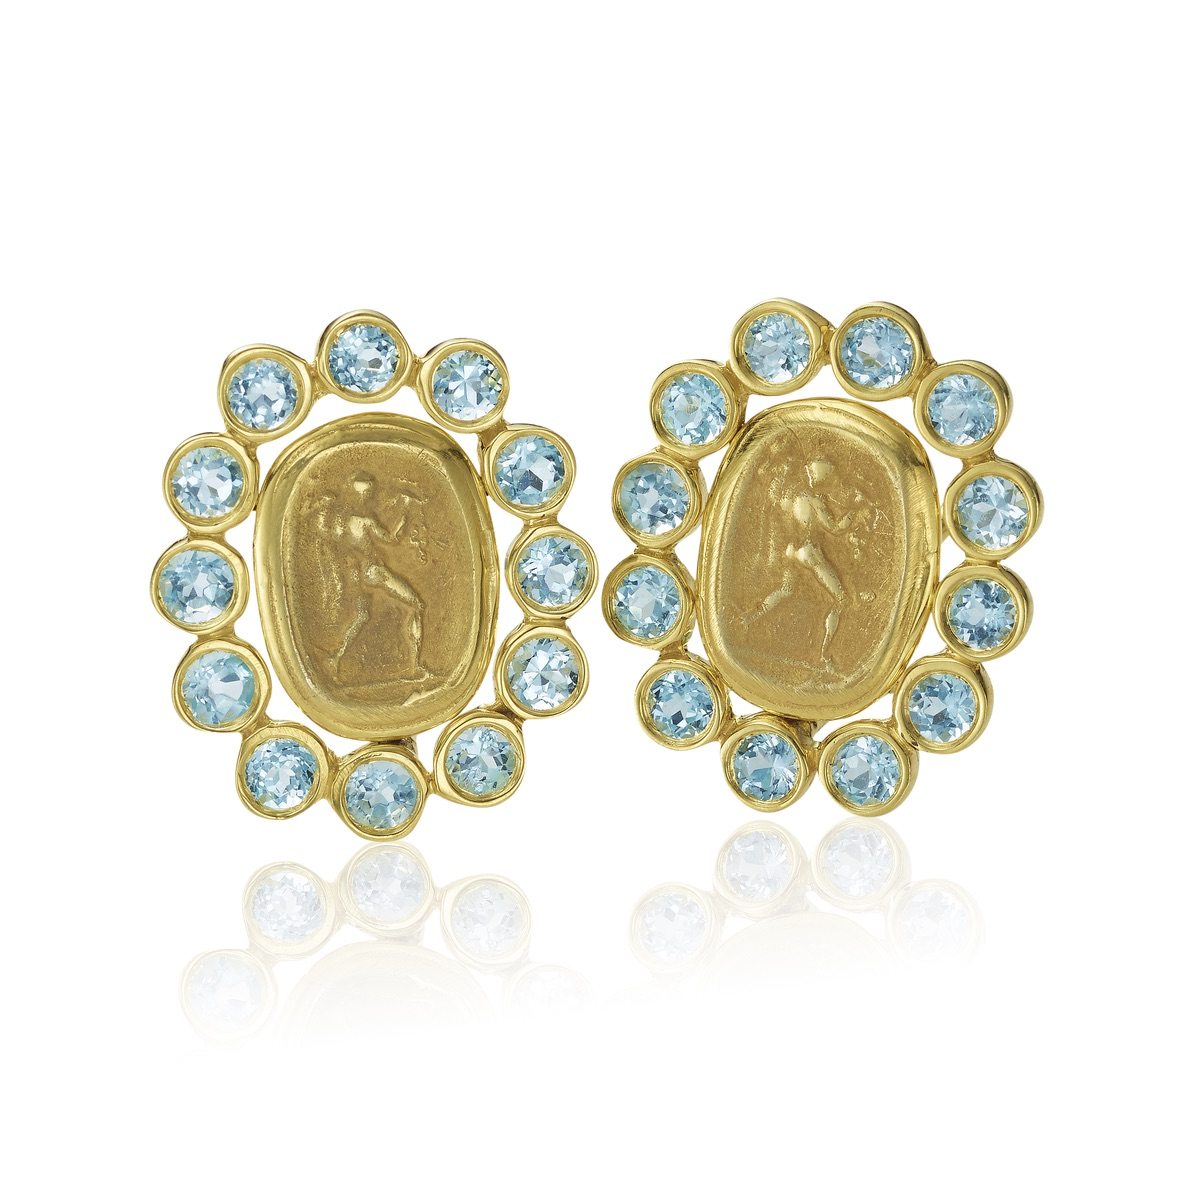 The Jewel - Mazza - Lookbook - Blue and Gold Earrings